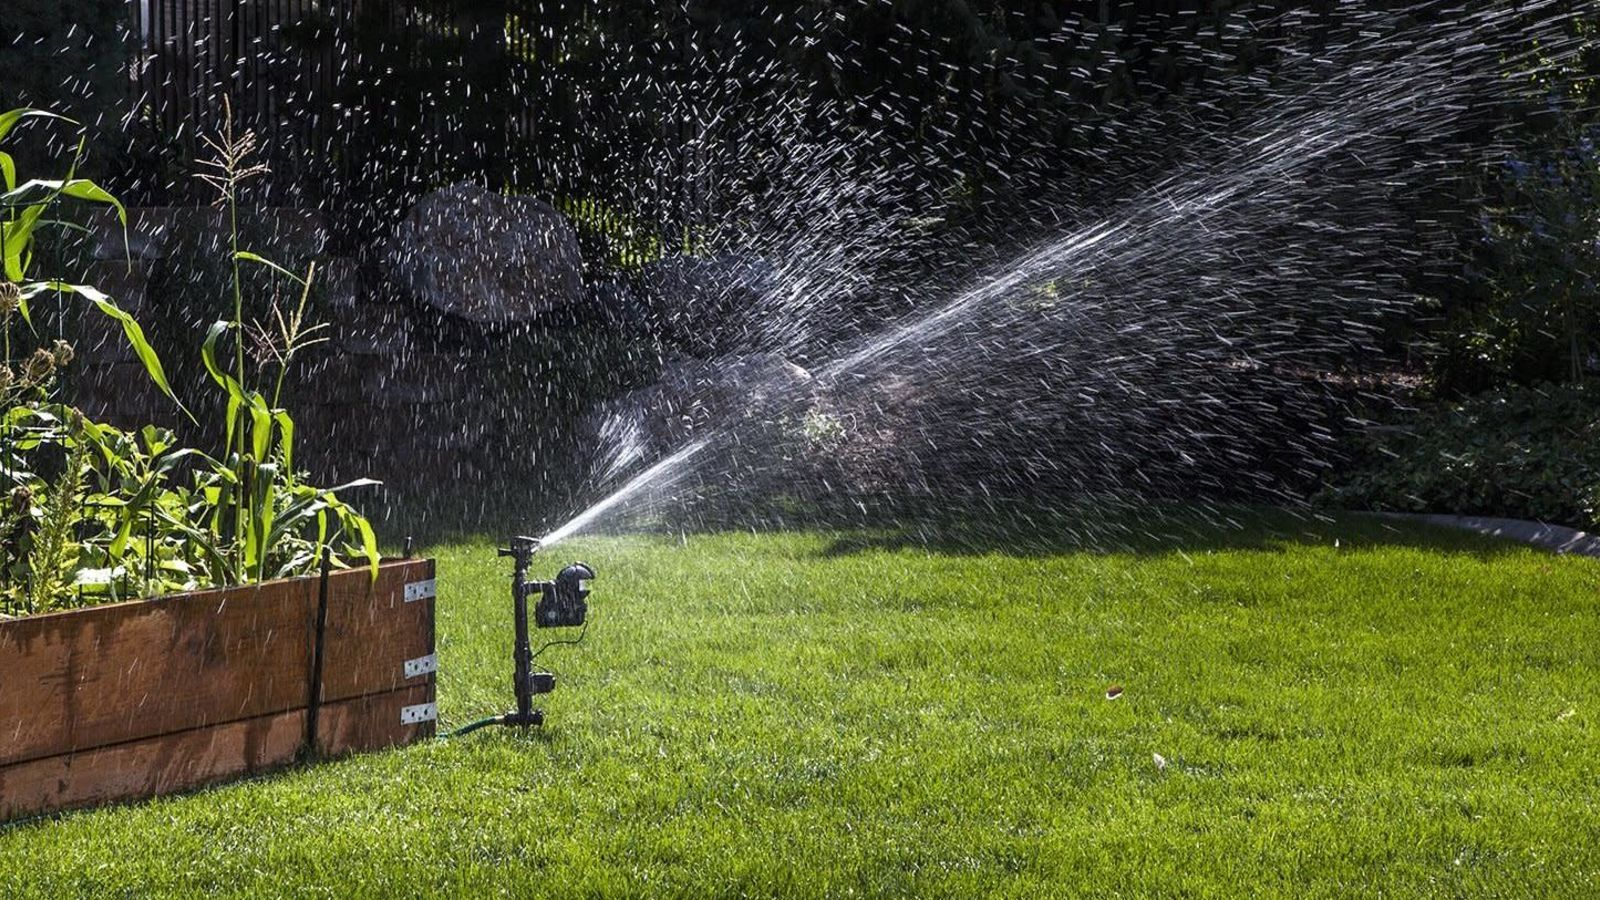 Kinja Deals Keep Intruders Off Your Lawn With This 55 Yard Enforcer Orbit Yard Enforcer Motion Activat Sprinkler Motion Activated Sprinkler Water Sprinkler